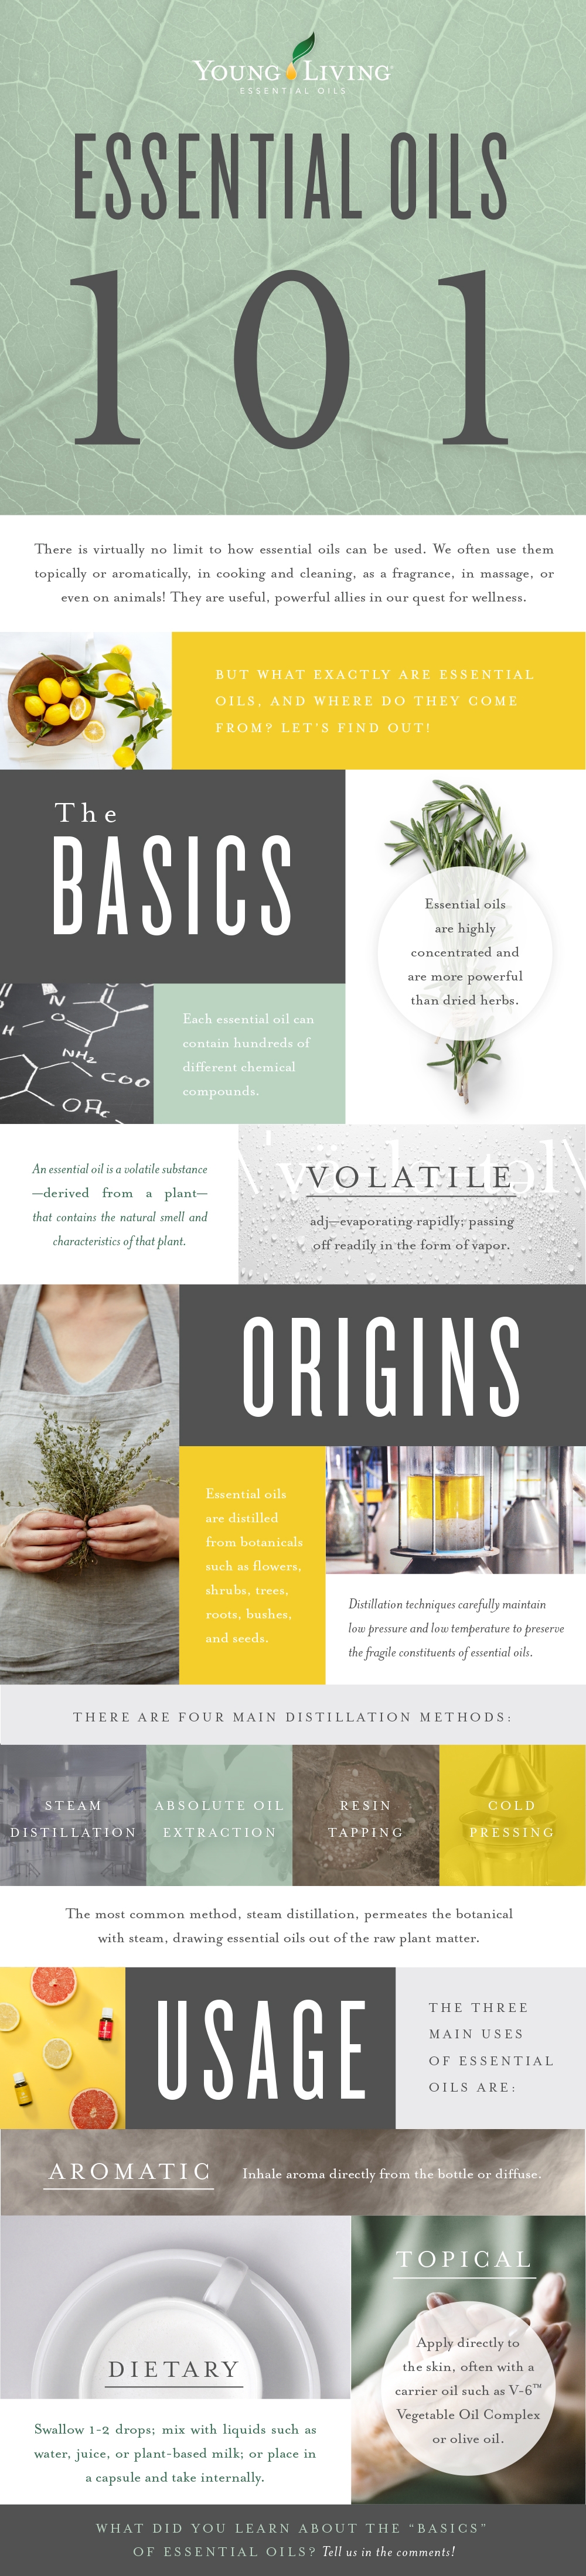 Essential oils 1011 What is an essential oil?